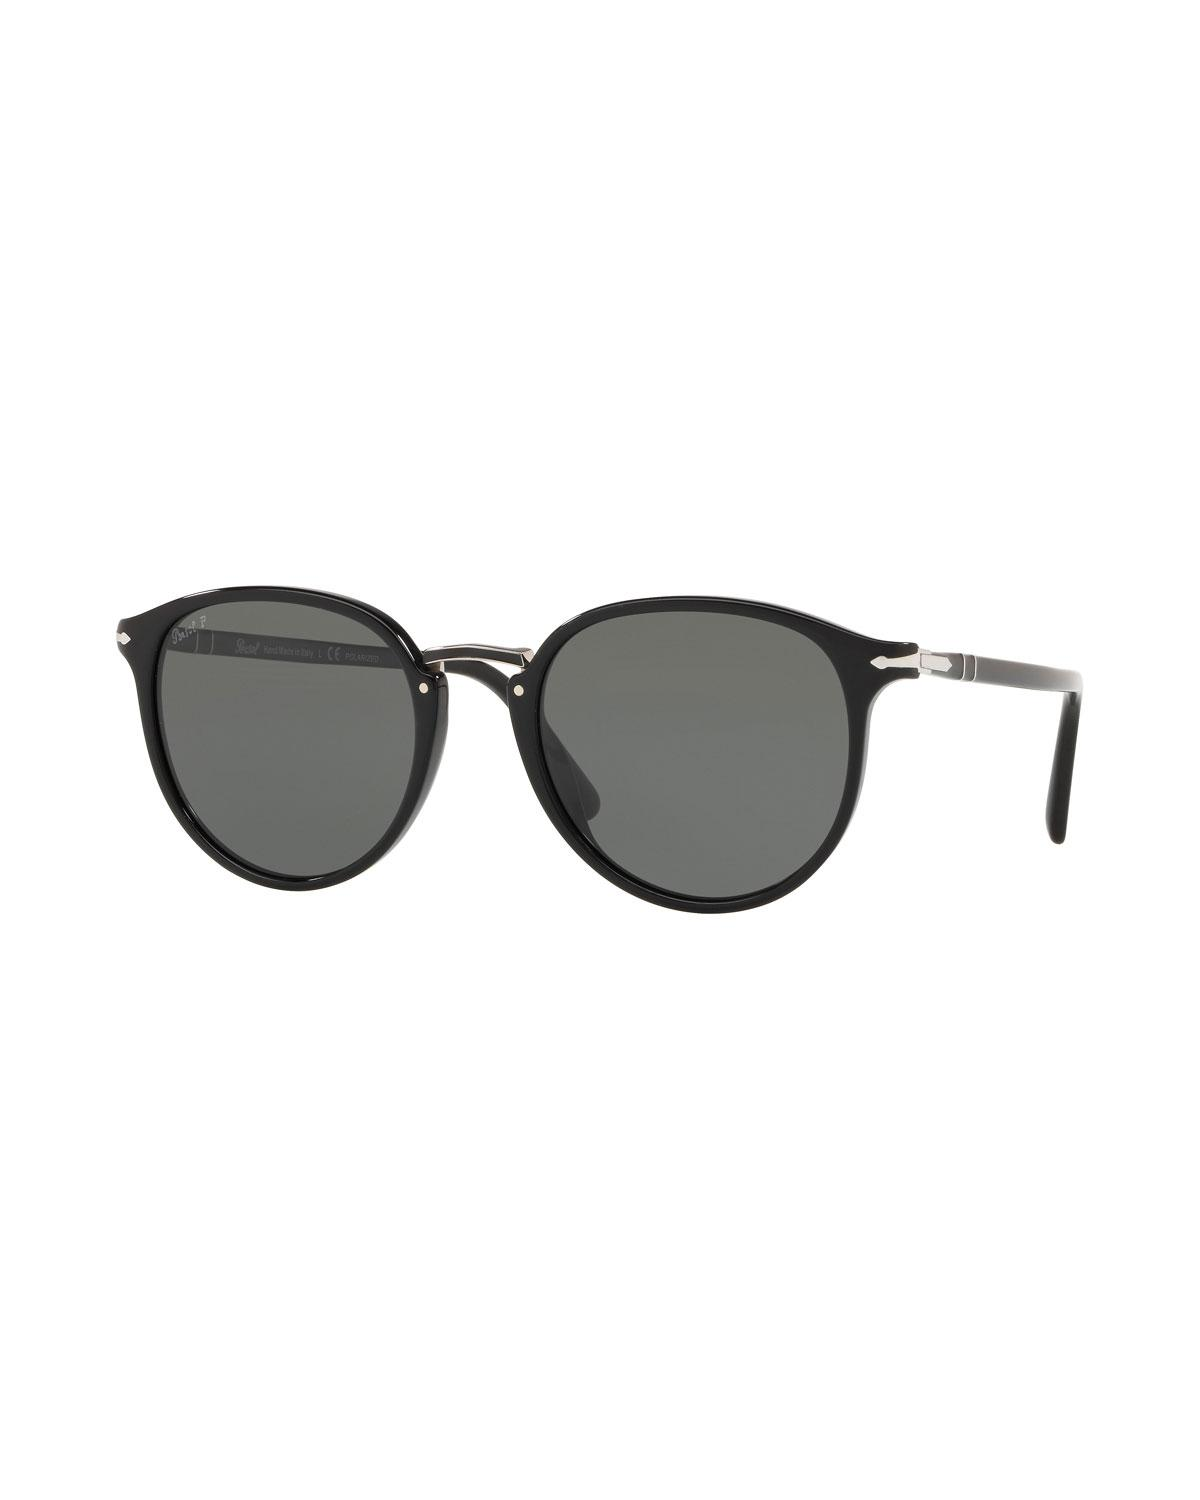 8f8cce80bc Lyst - Persol Men s Po3210s Oval Acetate Keyhole Sunglasses ...